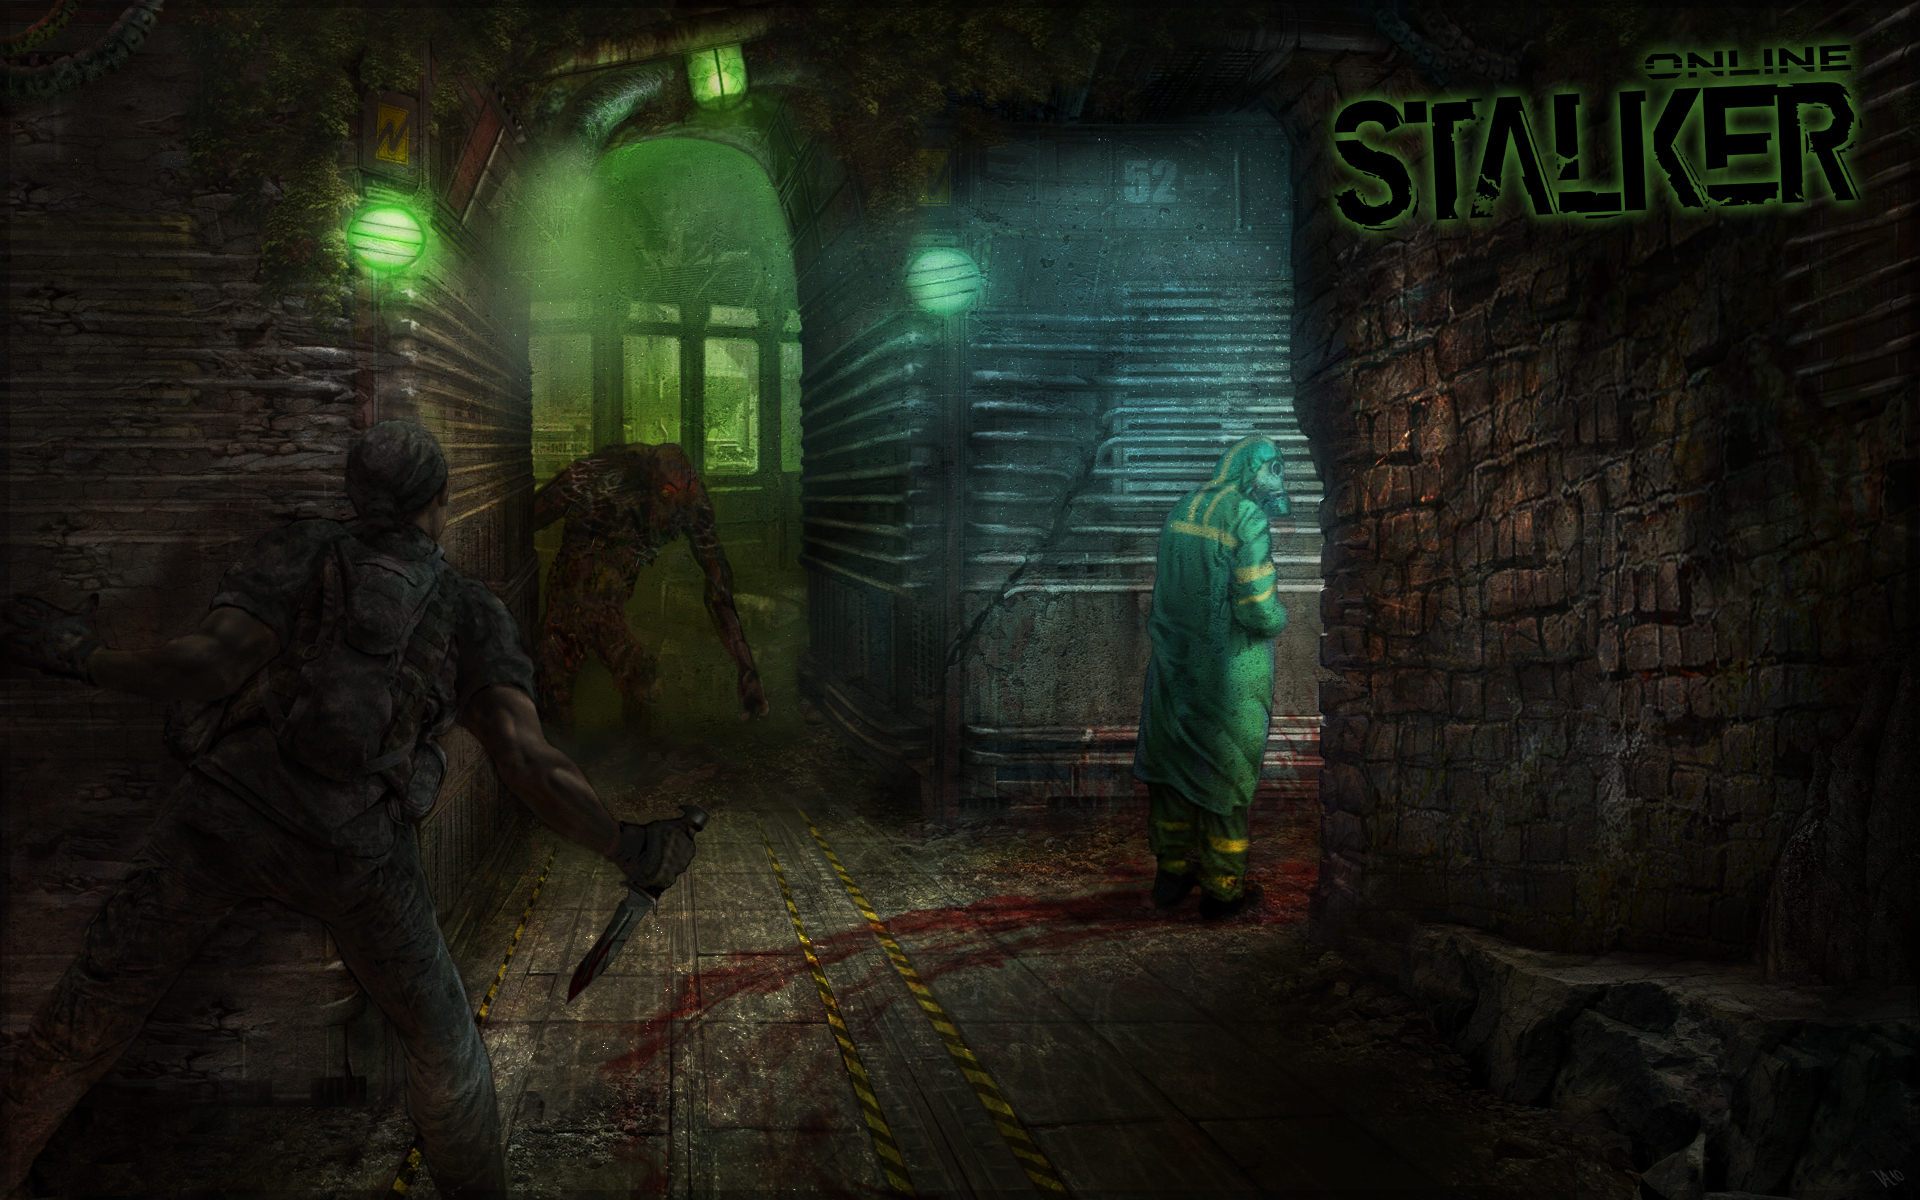 STALKER Full HD Wallpaper And Background Image